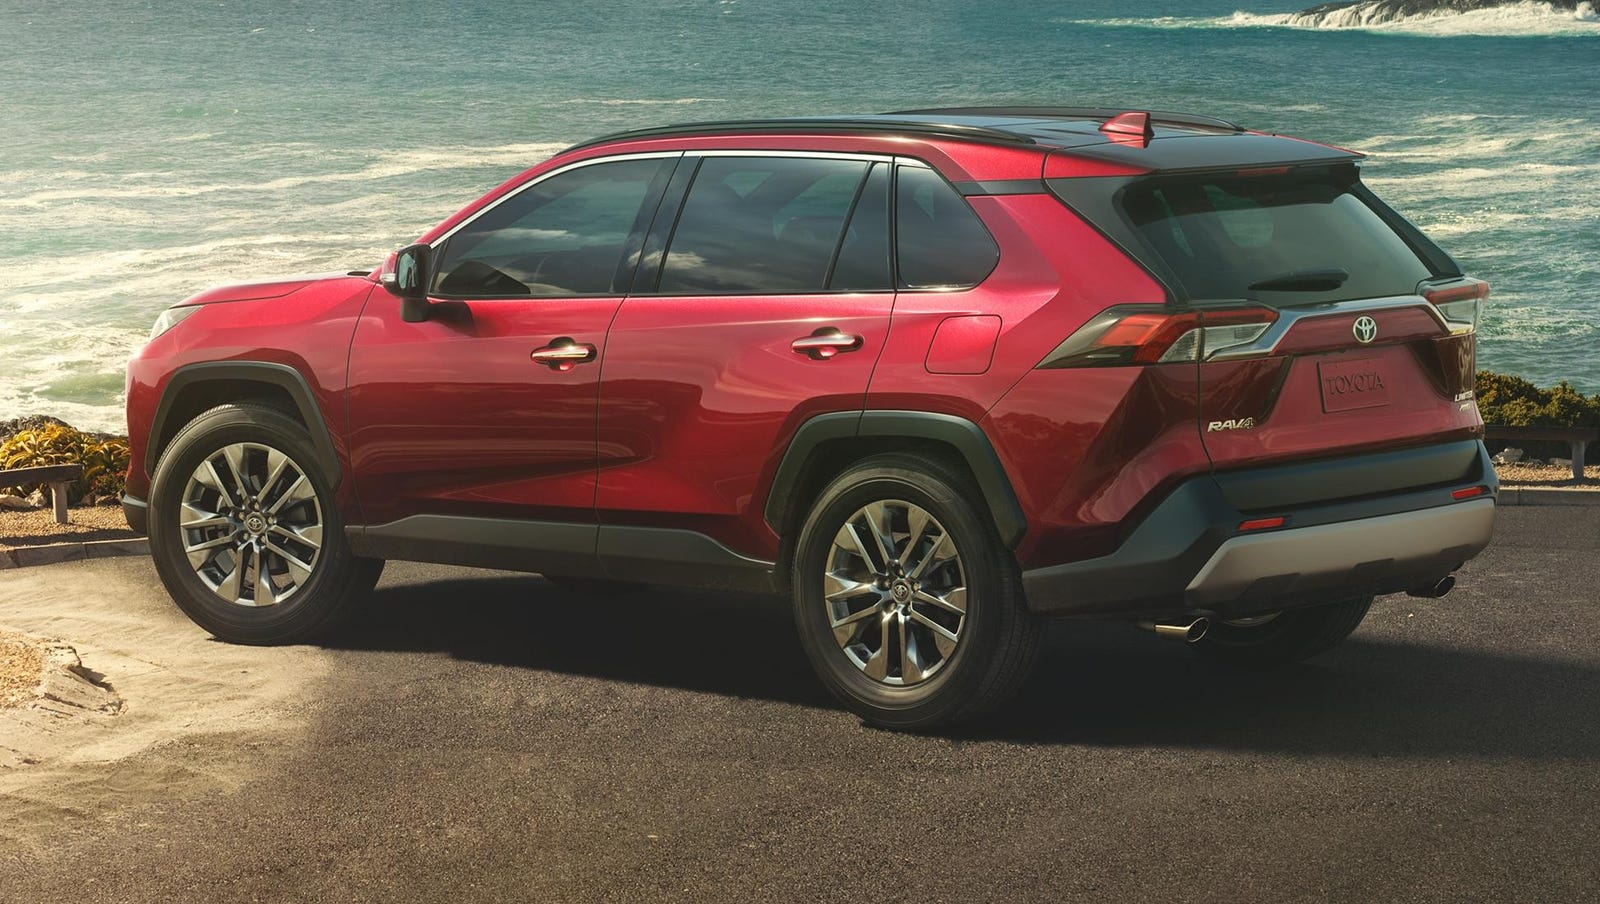 Redesigned Toyota Rav4 Gets A More Rugged Look For 2019